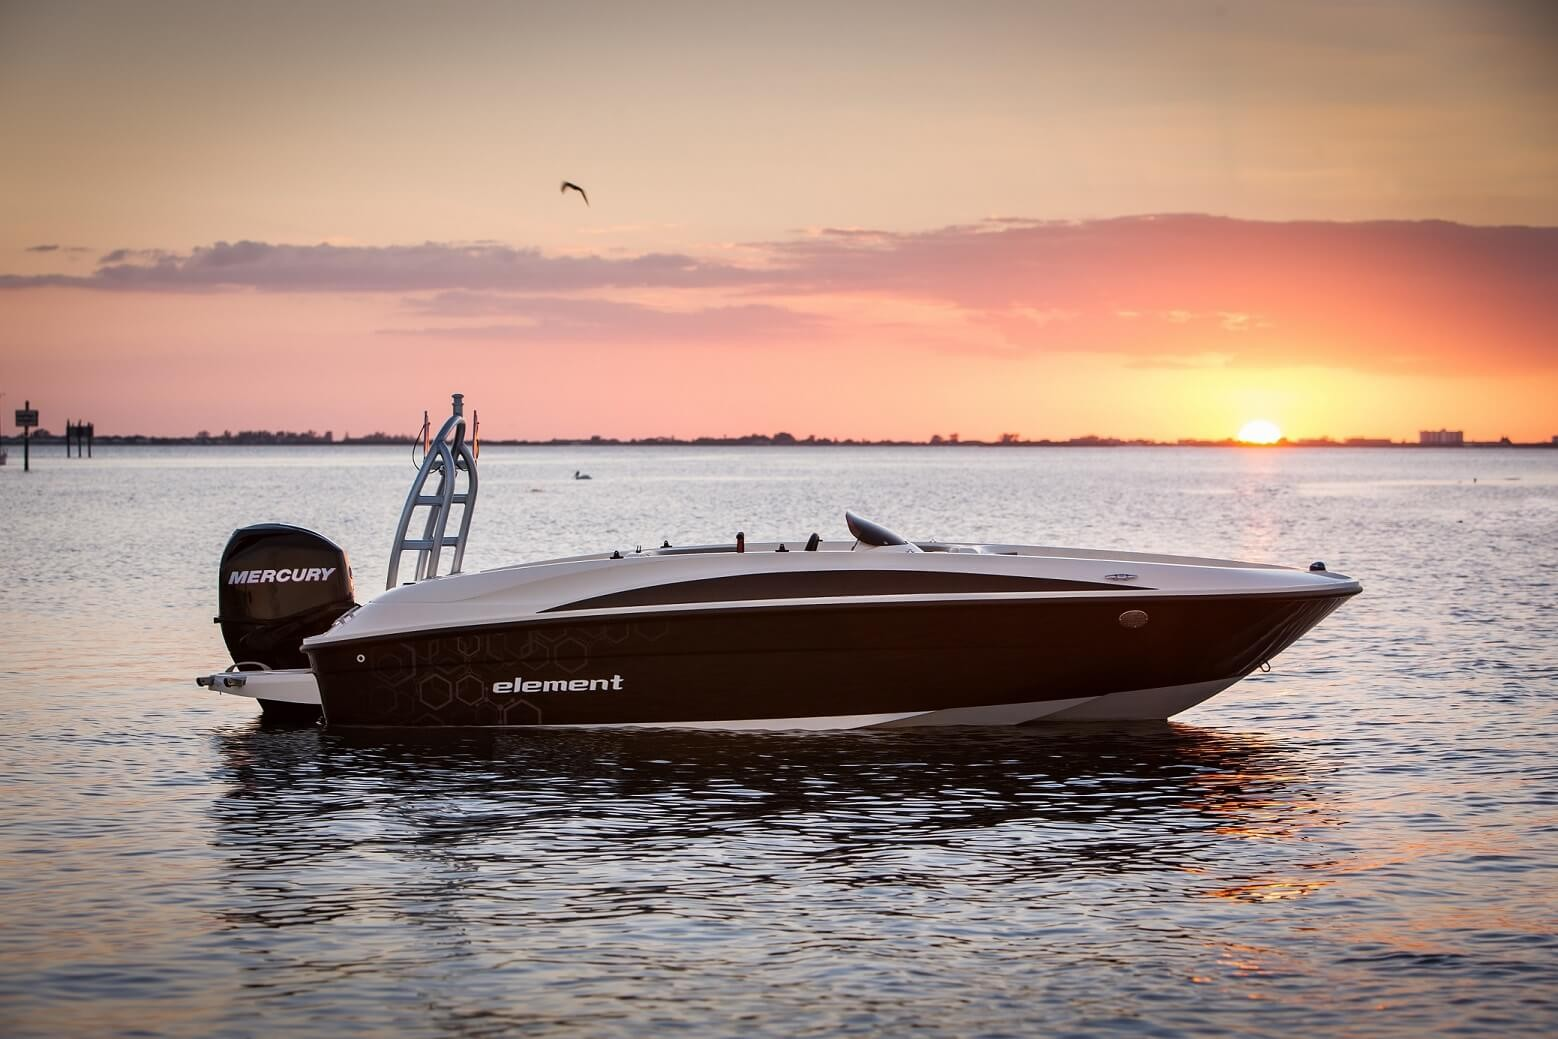 Bayliner Boats Deliver Function at a Fair Price